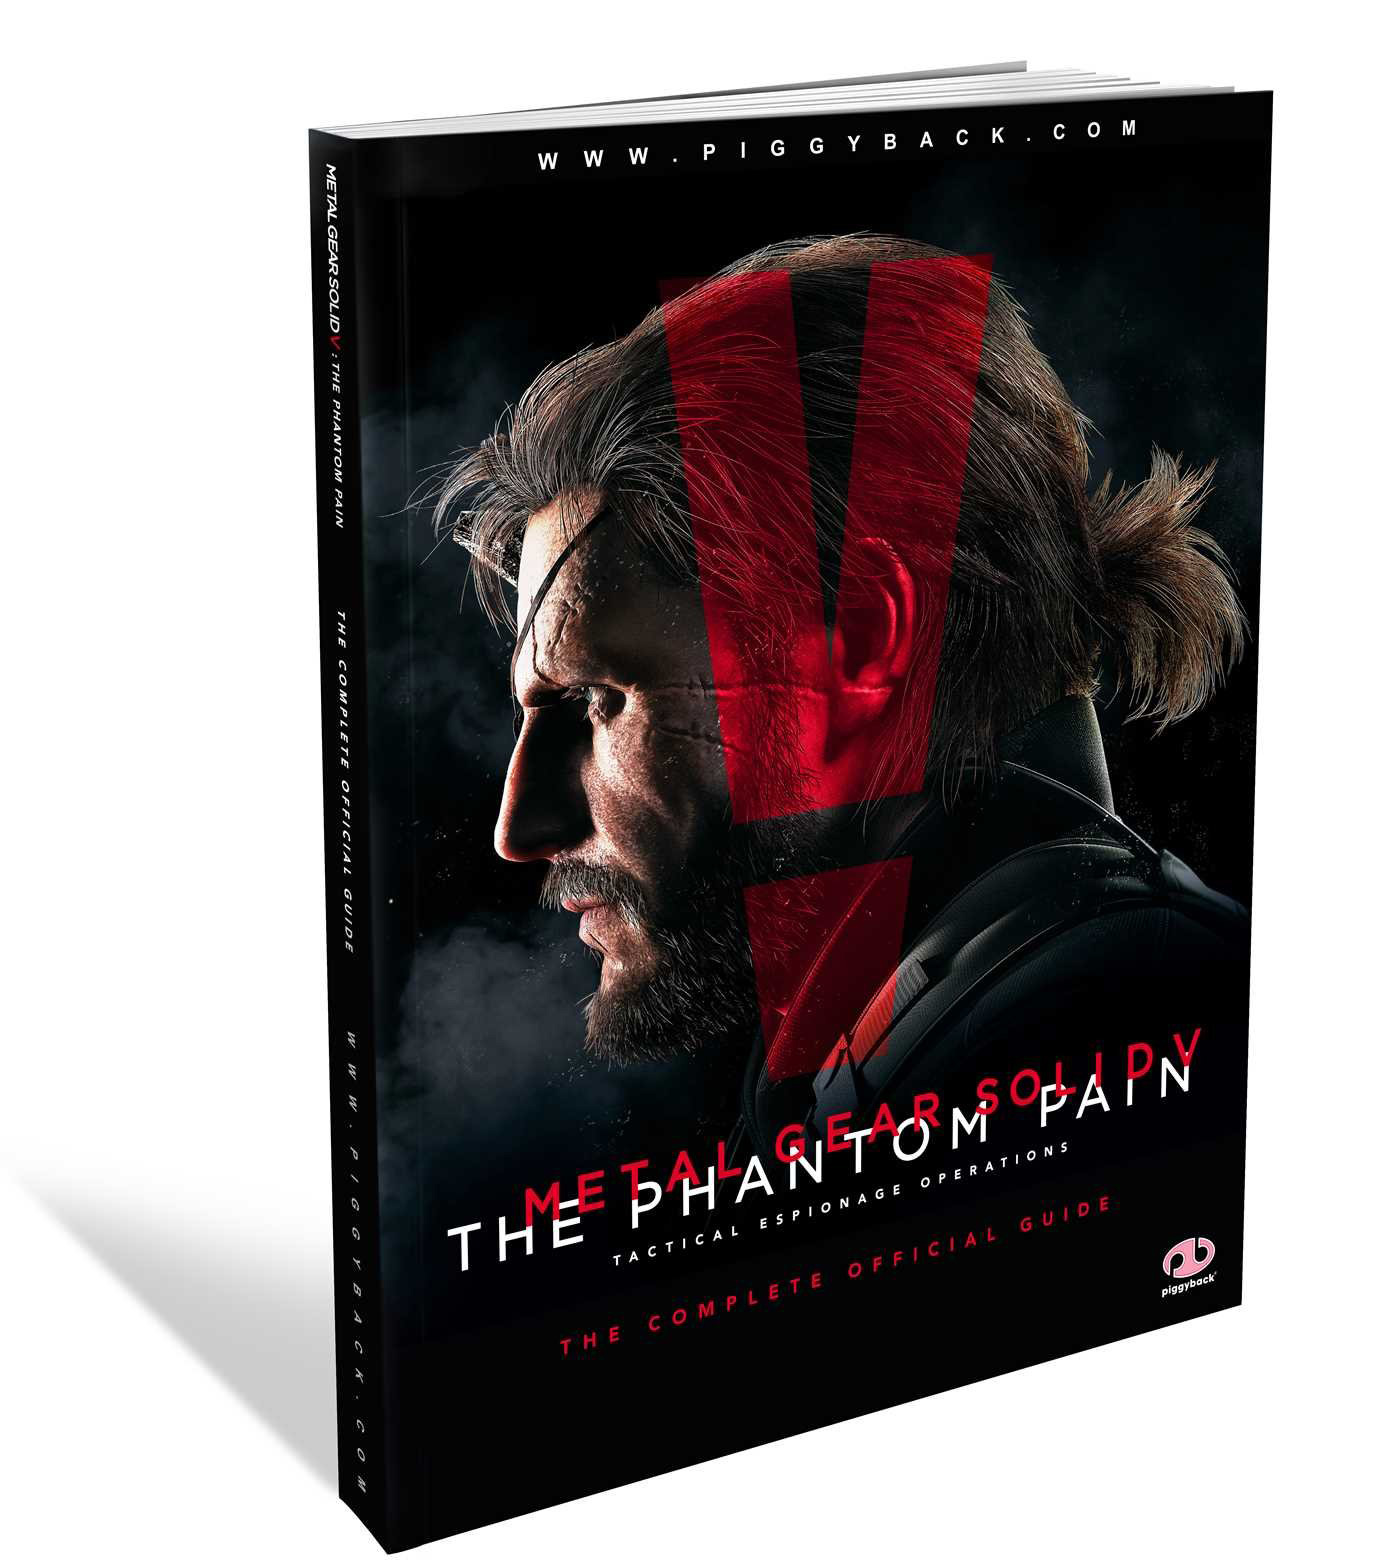 Metal-Gear-Solid-V-The-Phantom-Pain-Piggyback-Guide